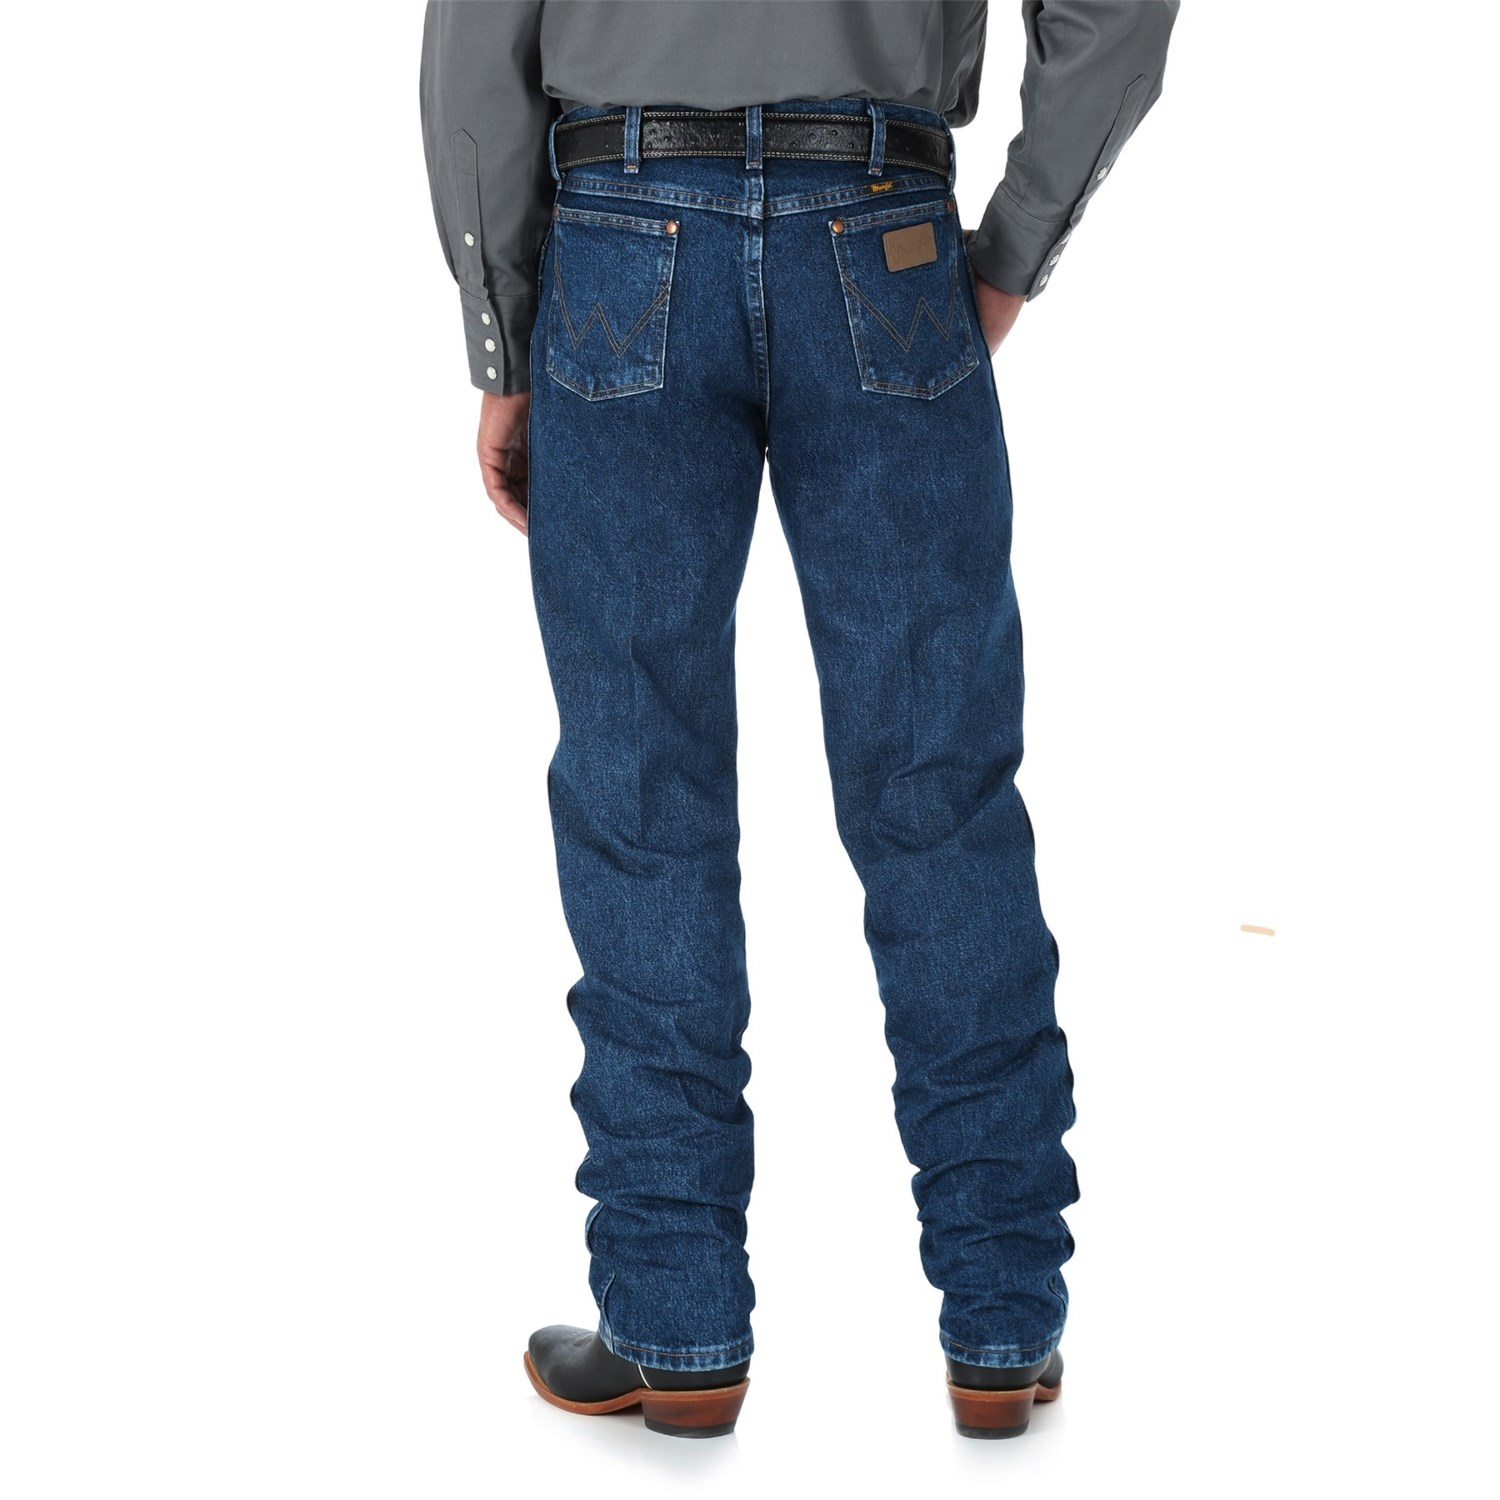 Can't find the right Jeans? Shop our selection of Big and Tall Jeans to end your search today. We carry all styles and sizes. Free Shipping Available.